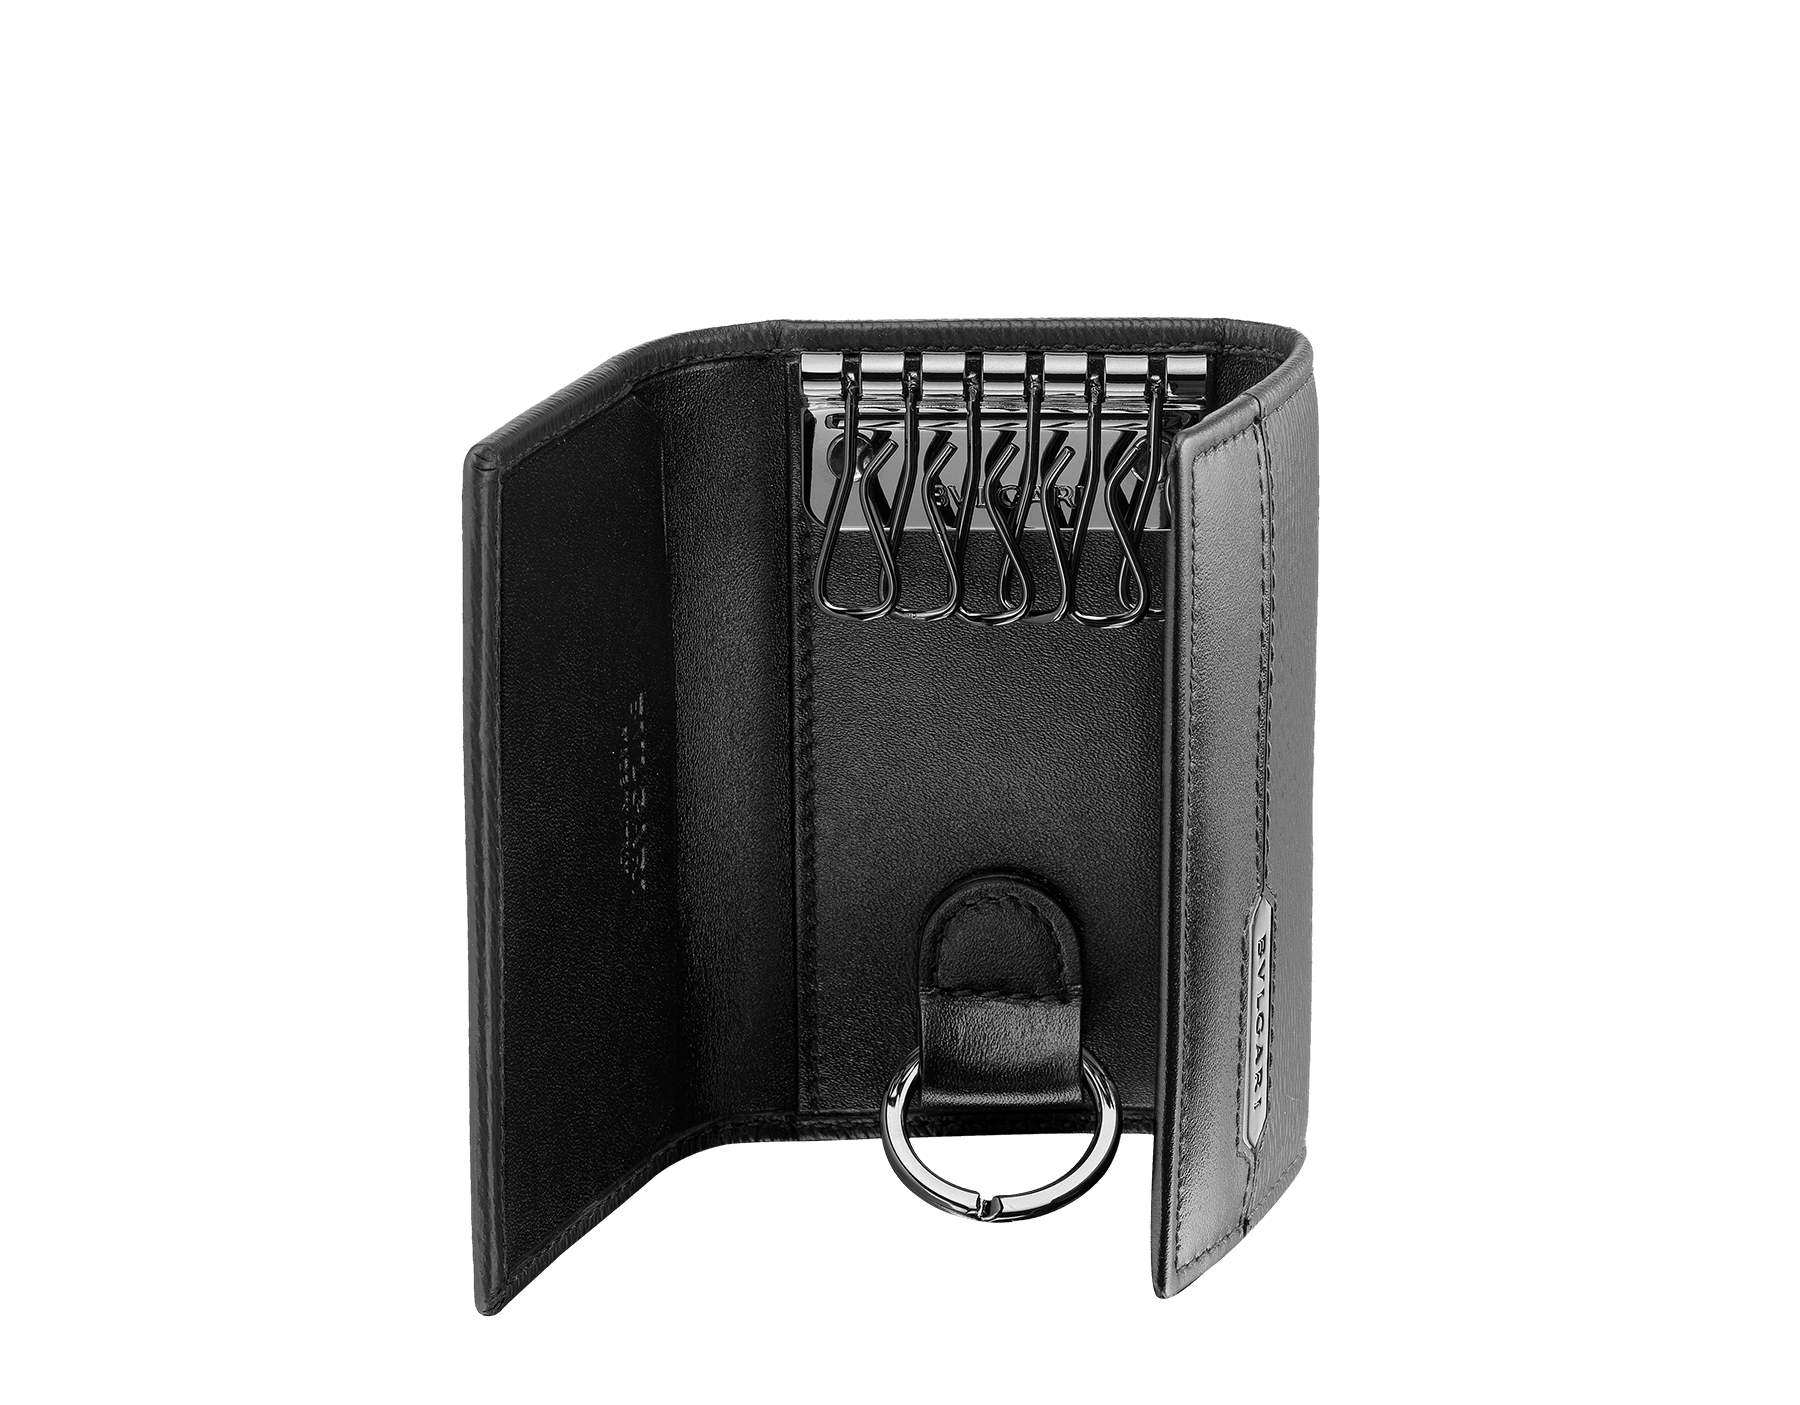 Keyholder in black grazed calf leather and black calf leather. Bulgari logo on metal plate featuring the Scaglie motif finished in dark ruthenium. 280887 image 2